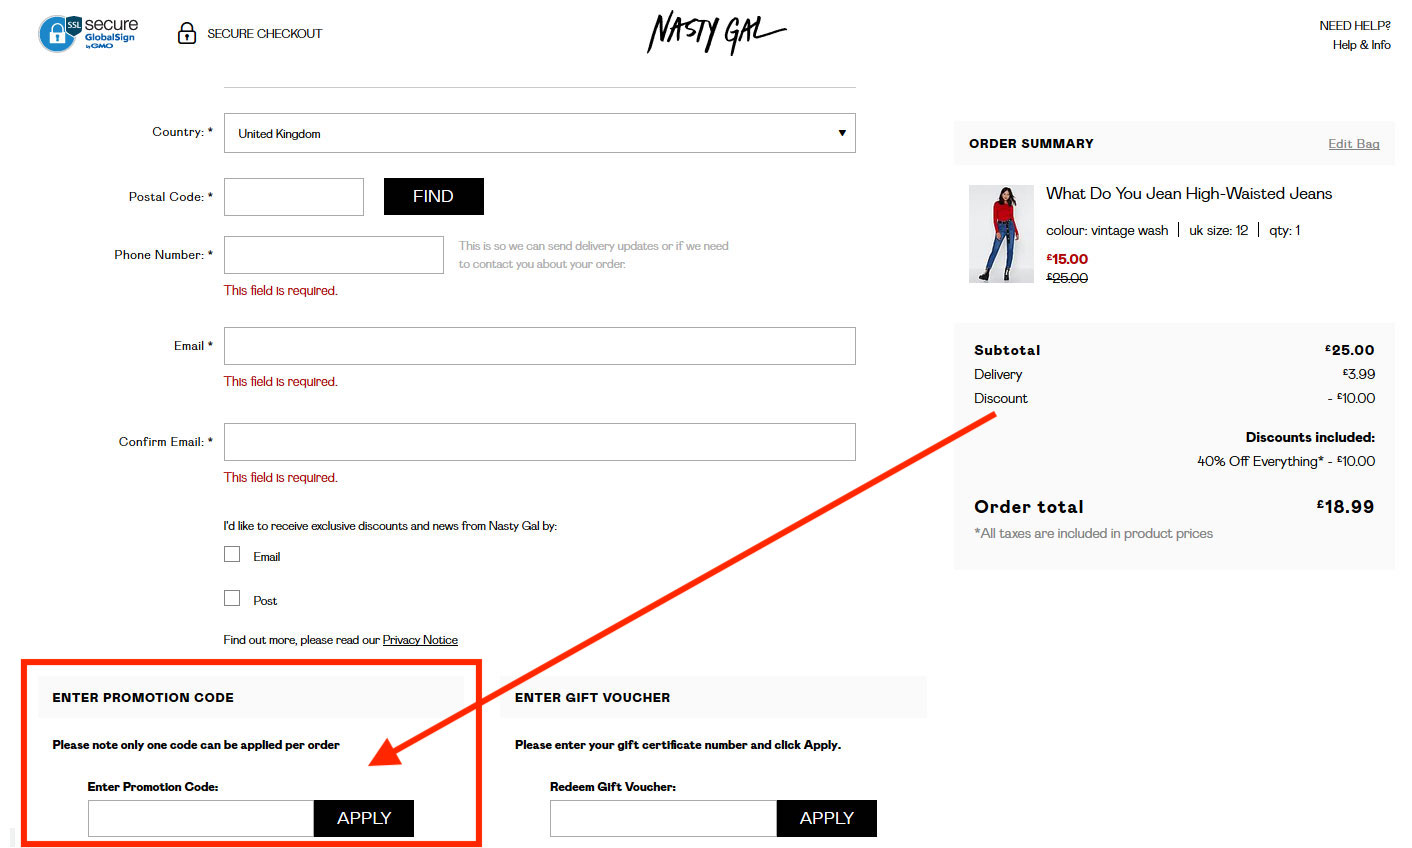 How to Use Nasty Gal Voucher Codes